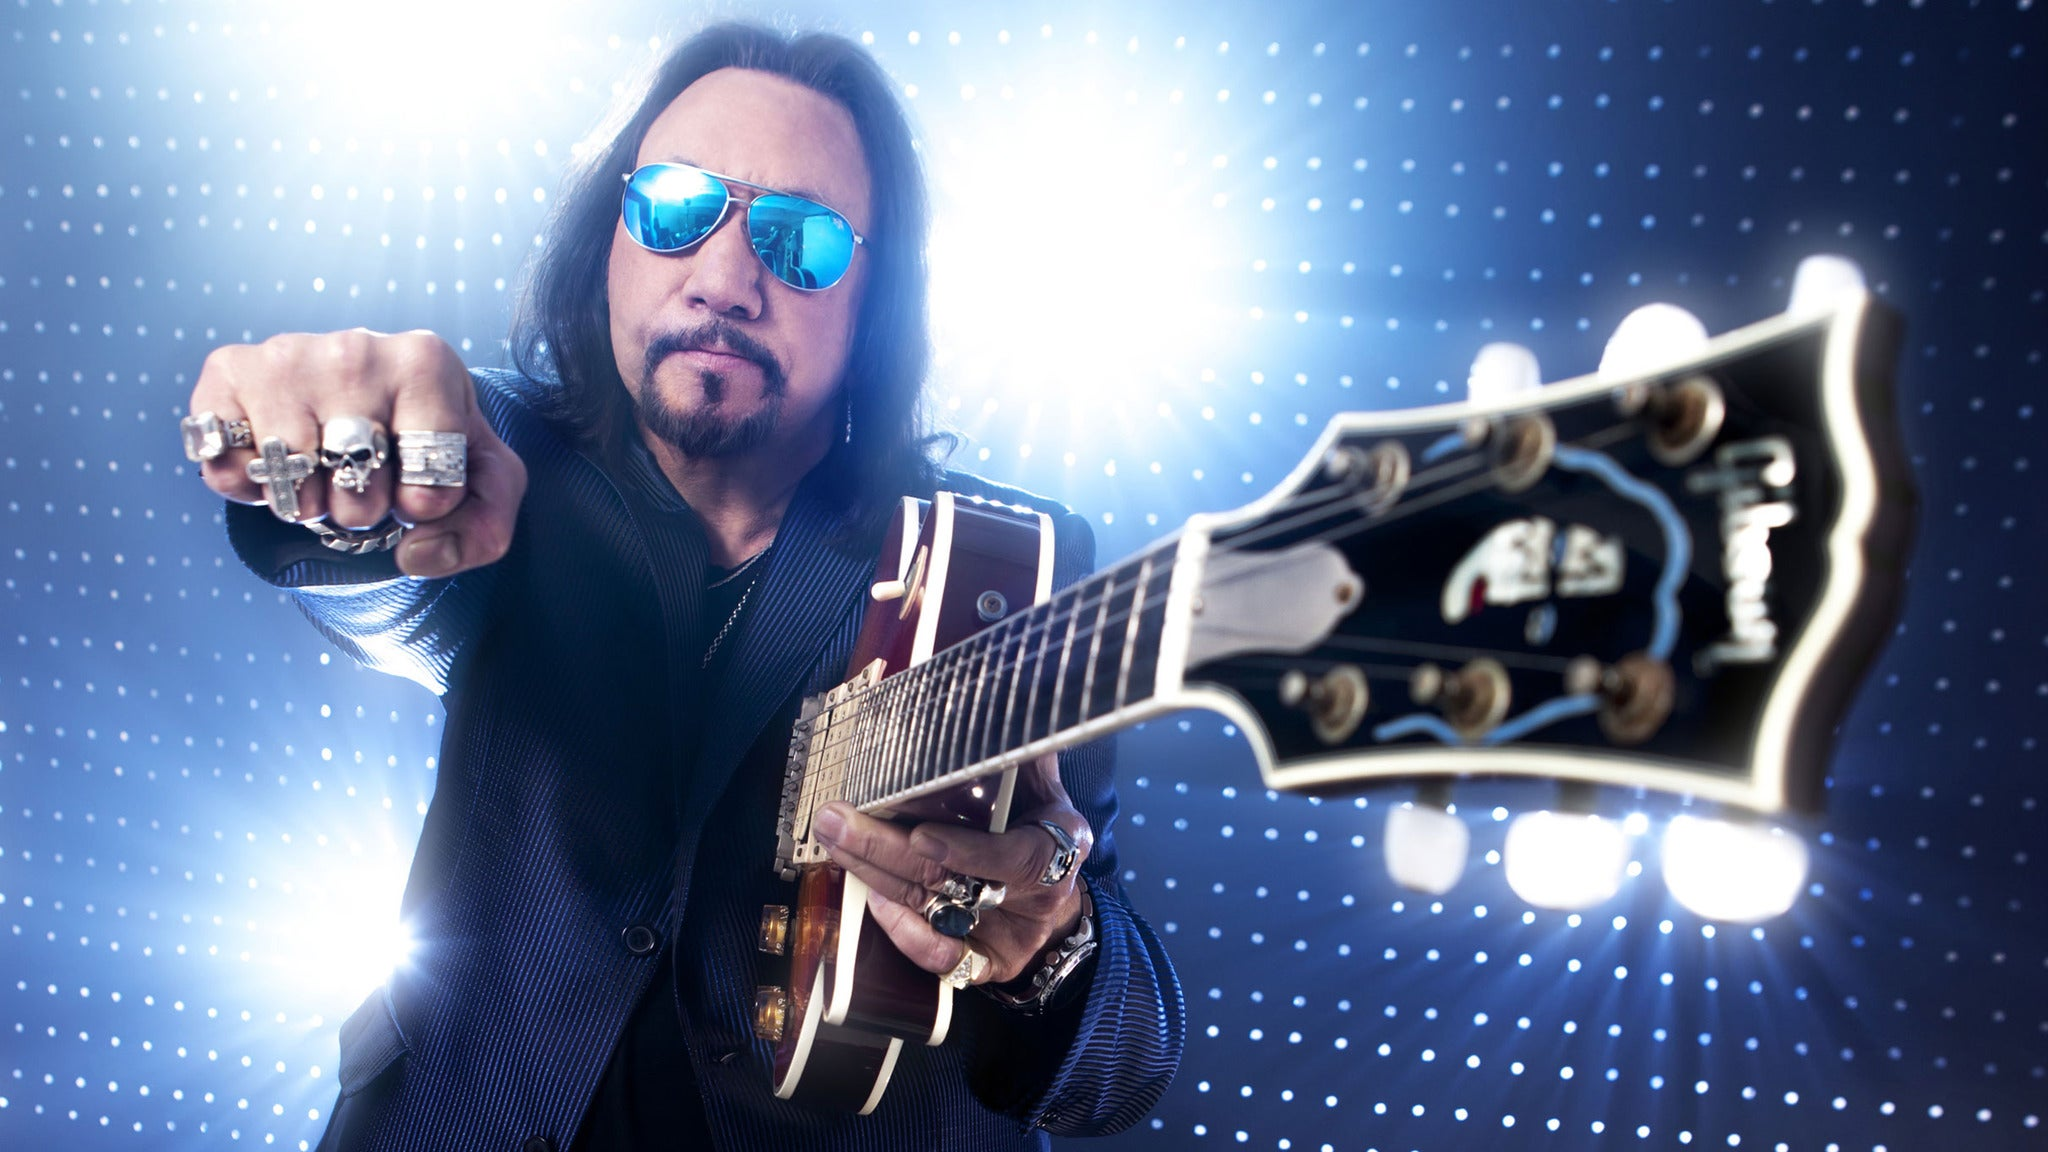 Ace Frehley at Cornerstone - CA - Berkeley, CA 94704